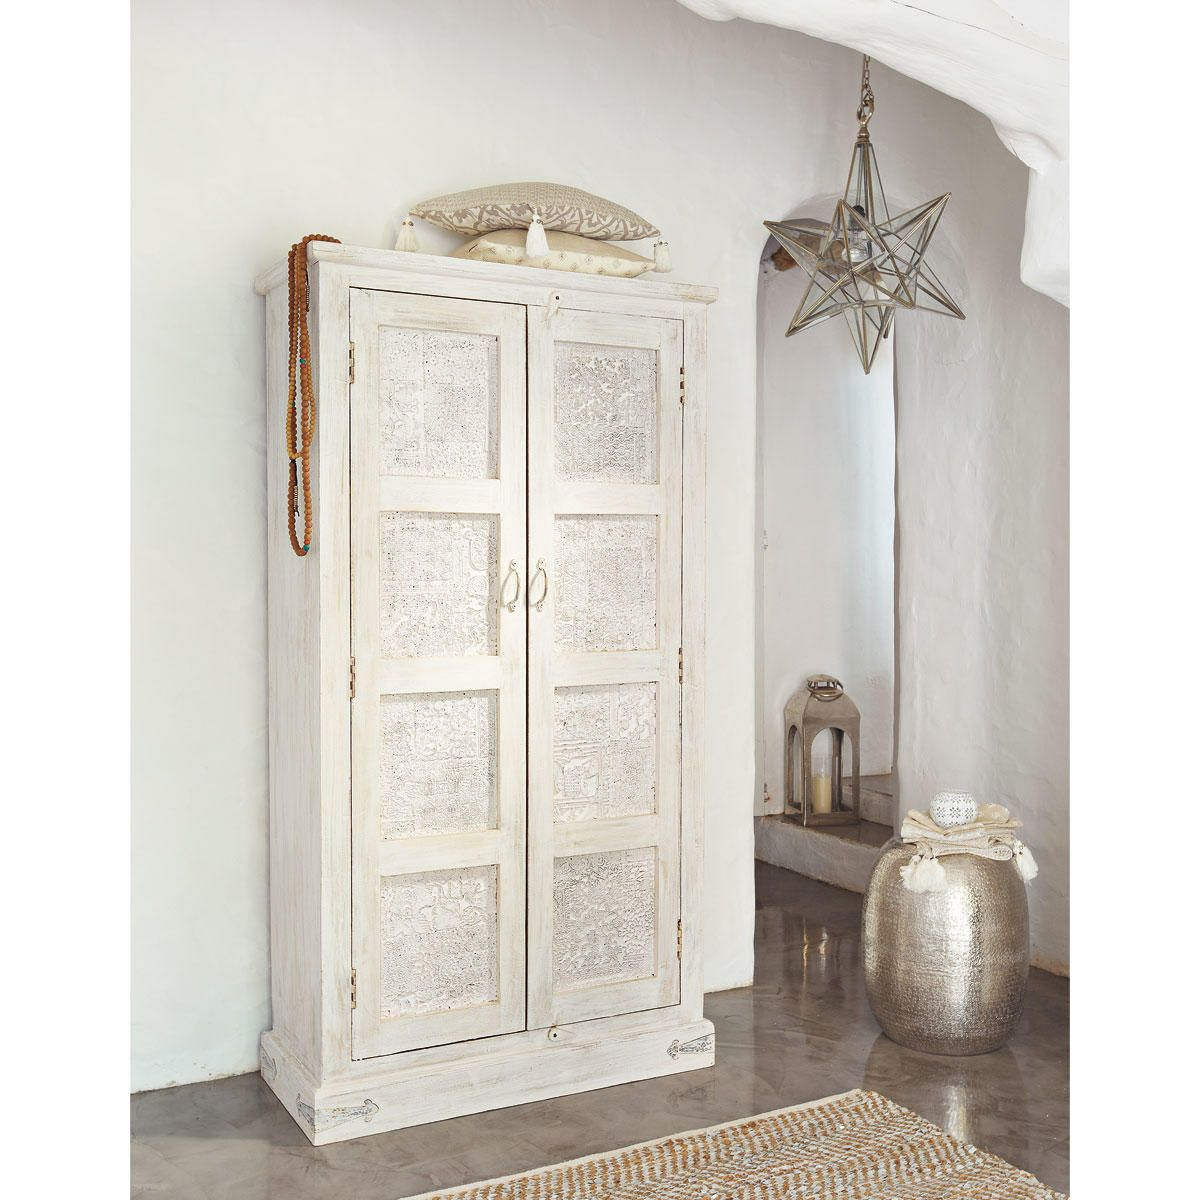 armoire en manguier blanche effet vieilli l 90 cm maison du monde armoires et le monde. Black Bedroom Furniture Sets. Home Design Ideas